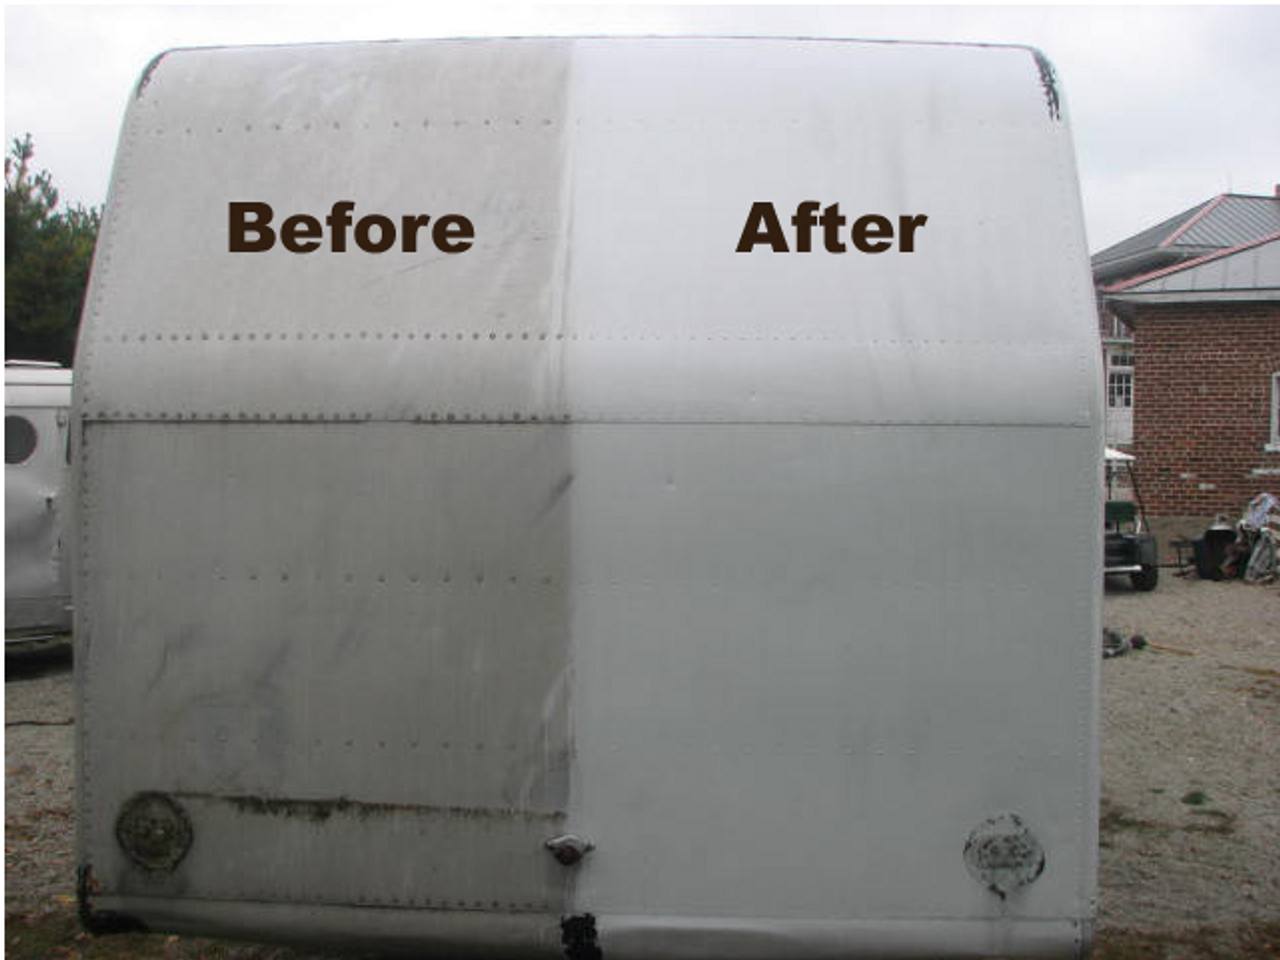 Aluminum Brightener (SC004) BEFORE LEFT AFTER RIGHT SHOWING RESULTS OF USING PRODUCT